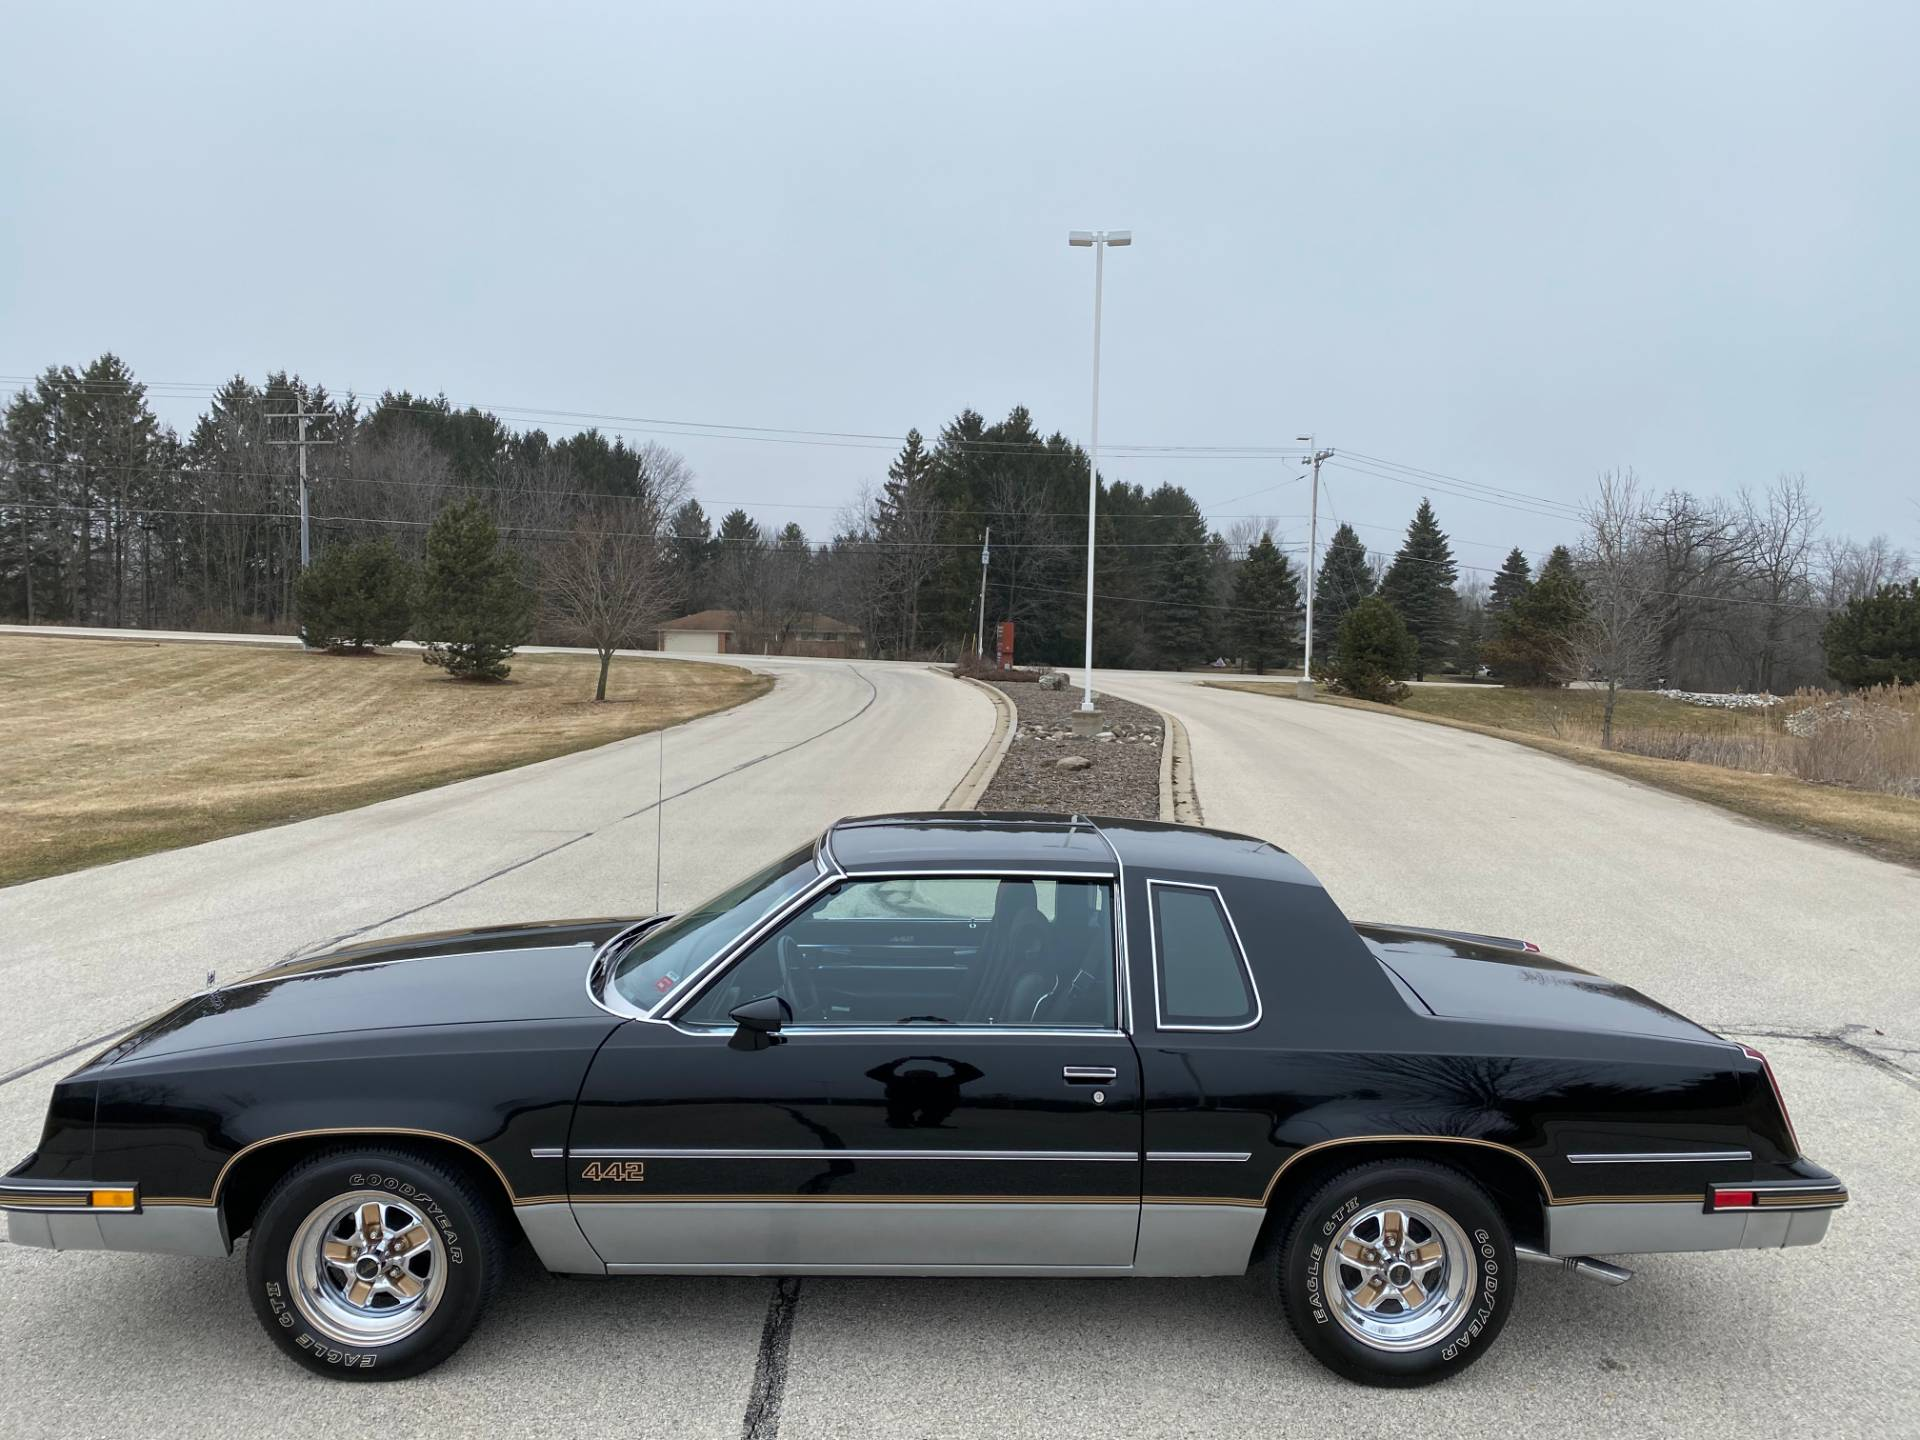 1985 Oldsmobile Cutlass Salon 442 in Big Bend, Wisconsin - Photo 127